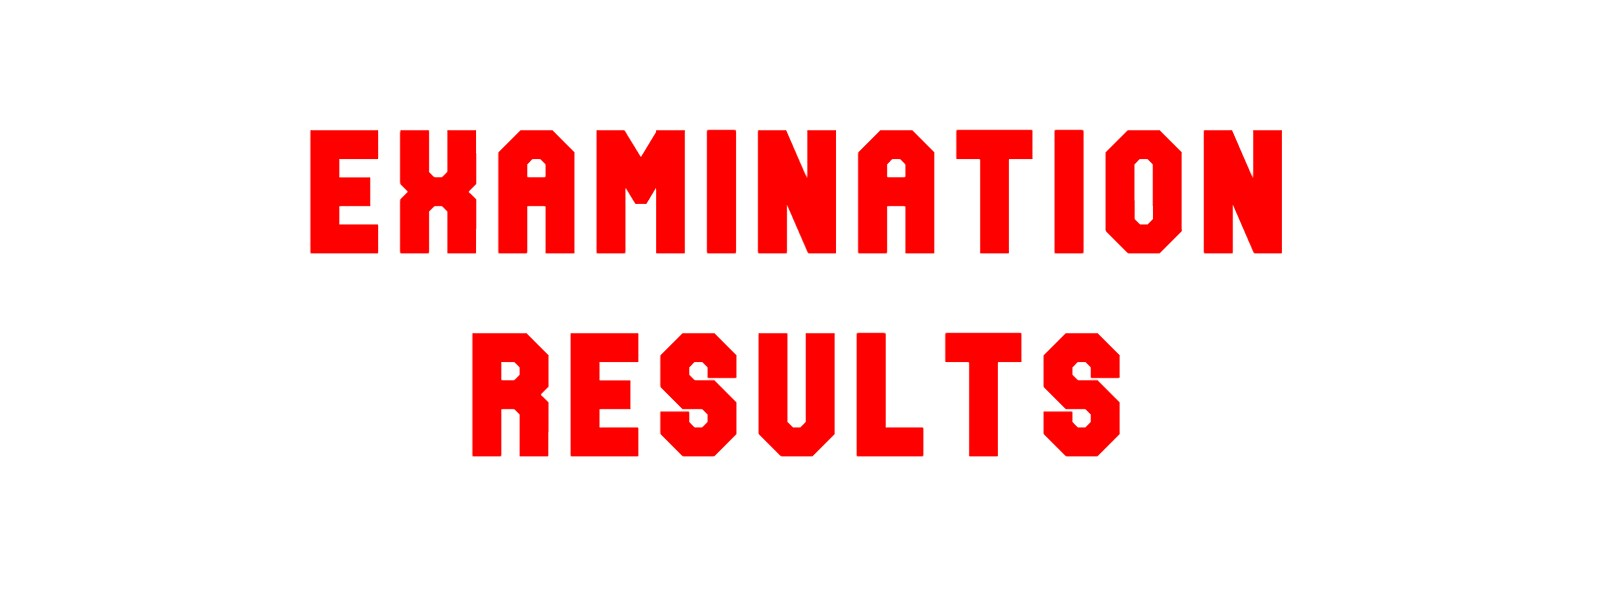 2020 A/L results released